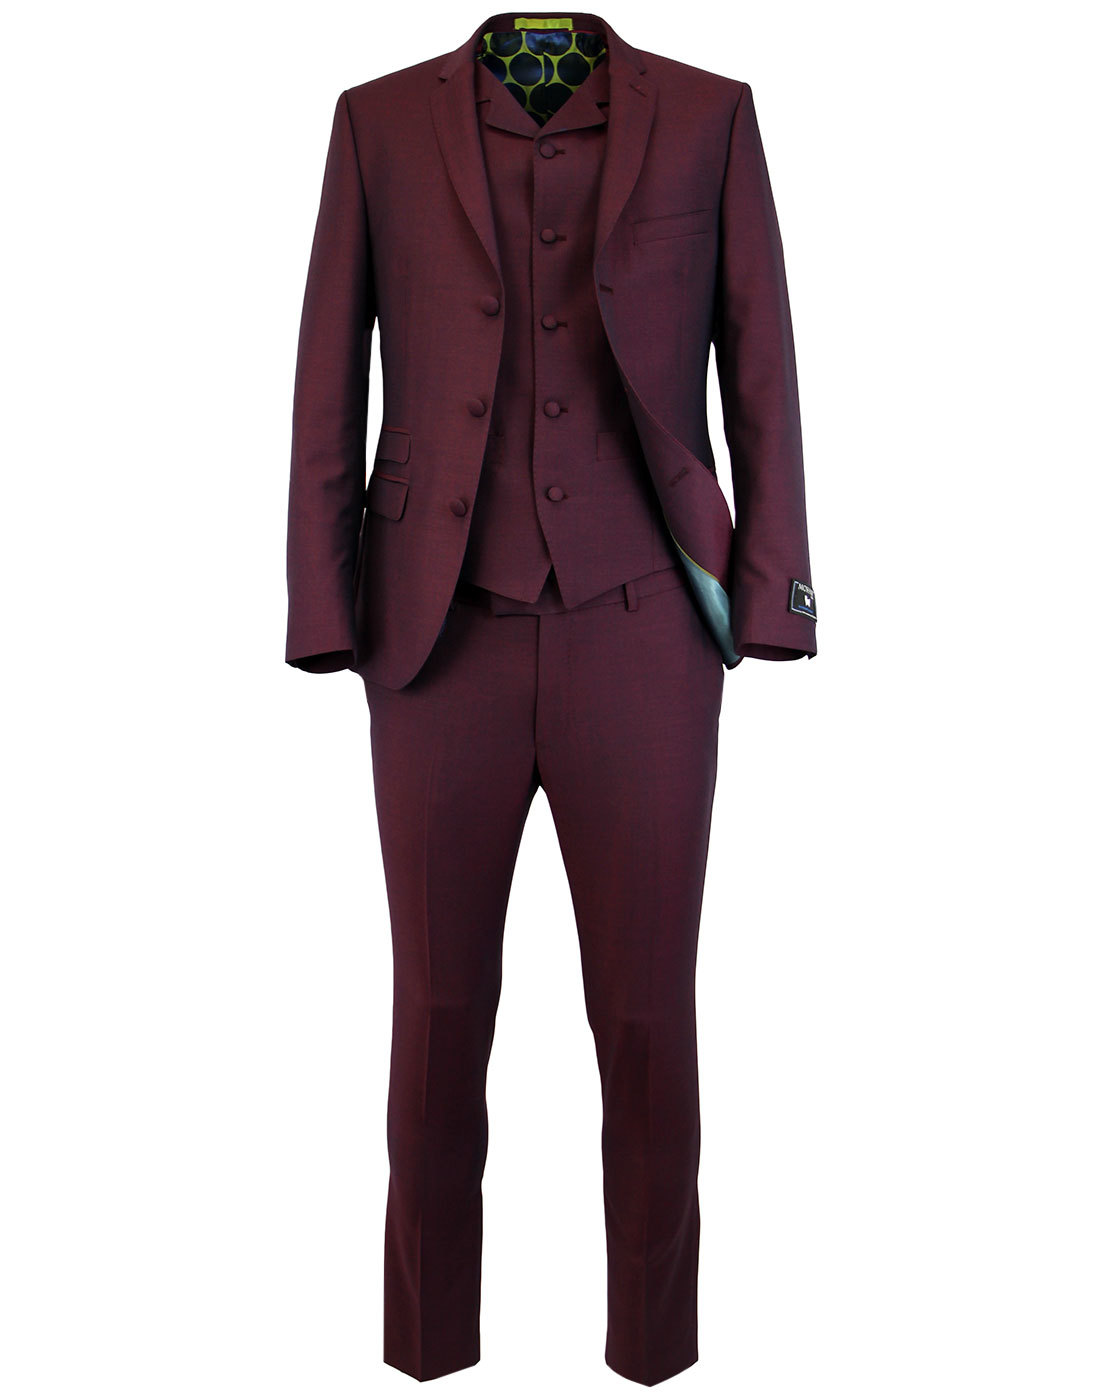 MADCAP ENGLAND Mod Mohair Tonic Suit in Burgundy